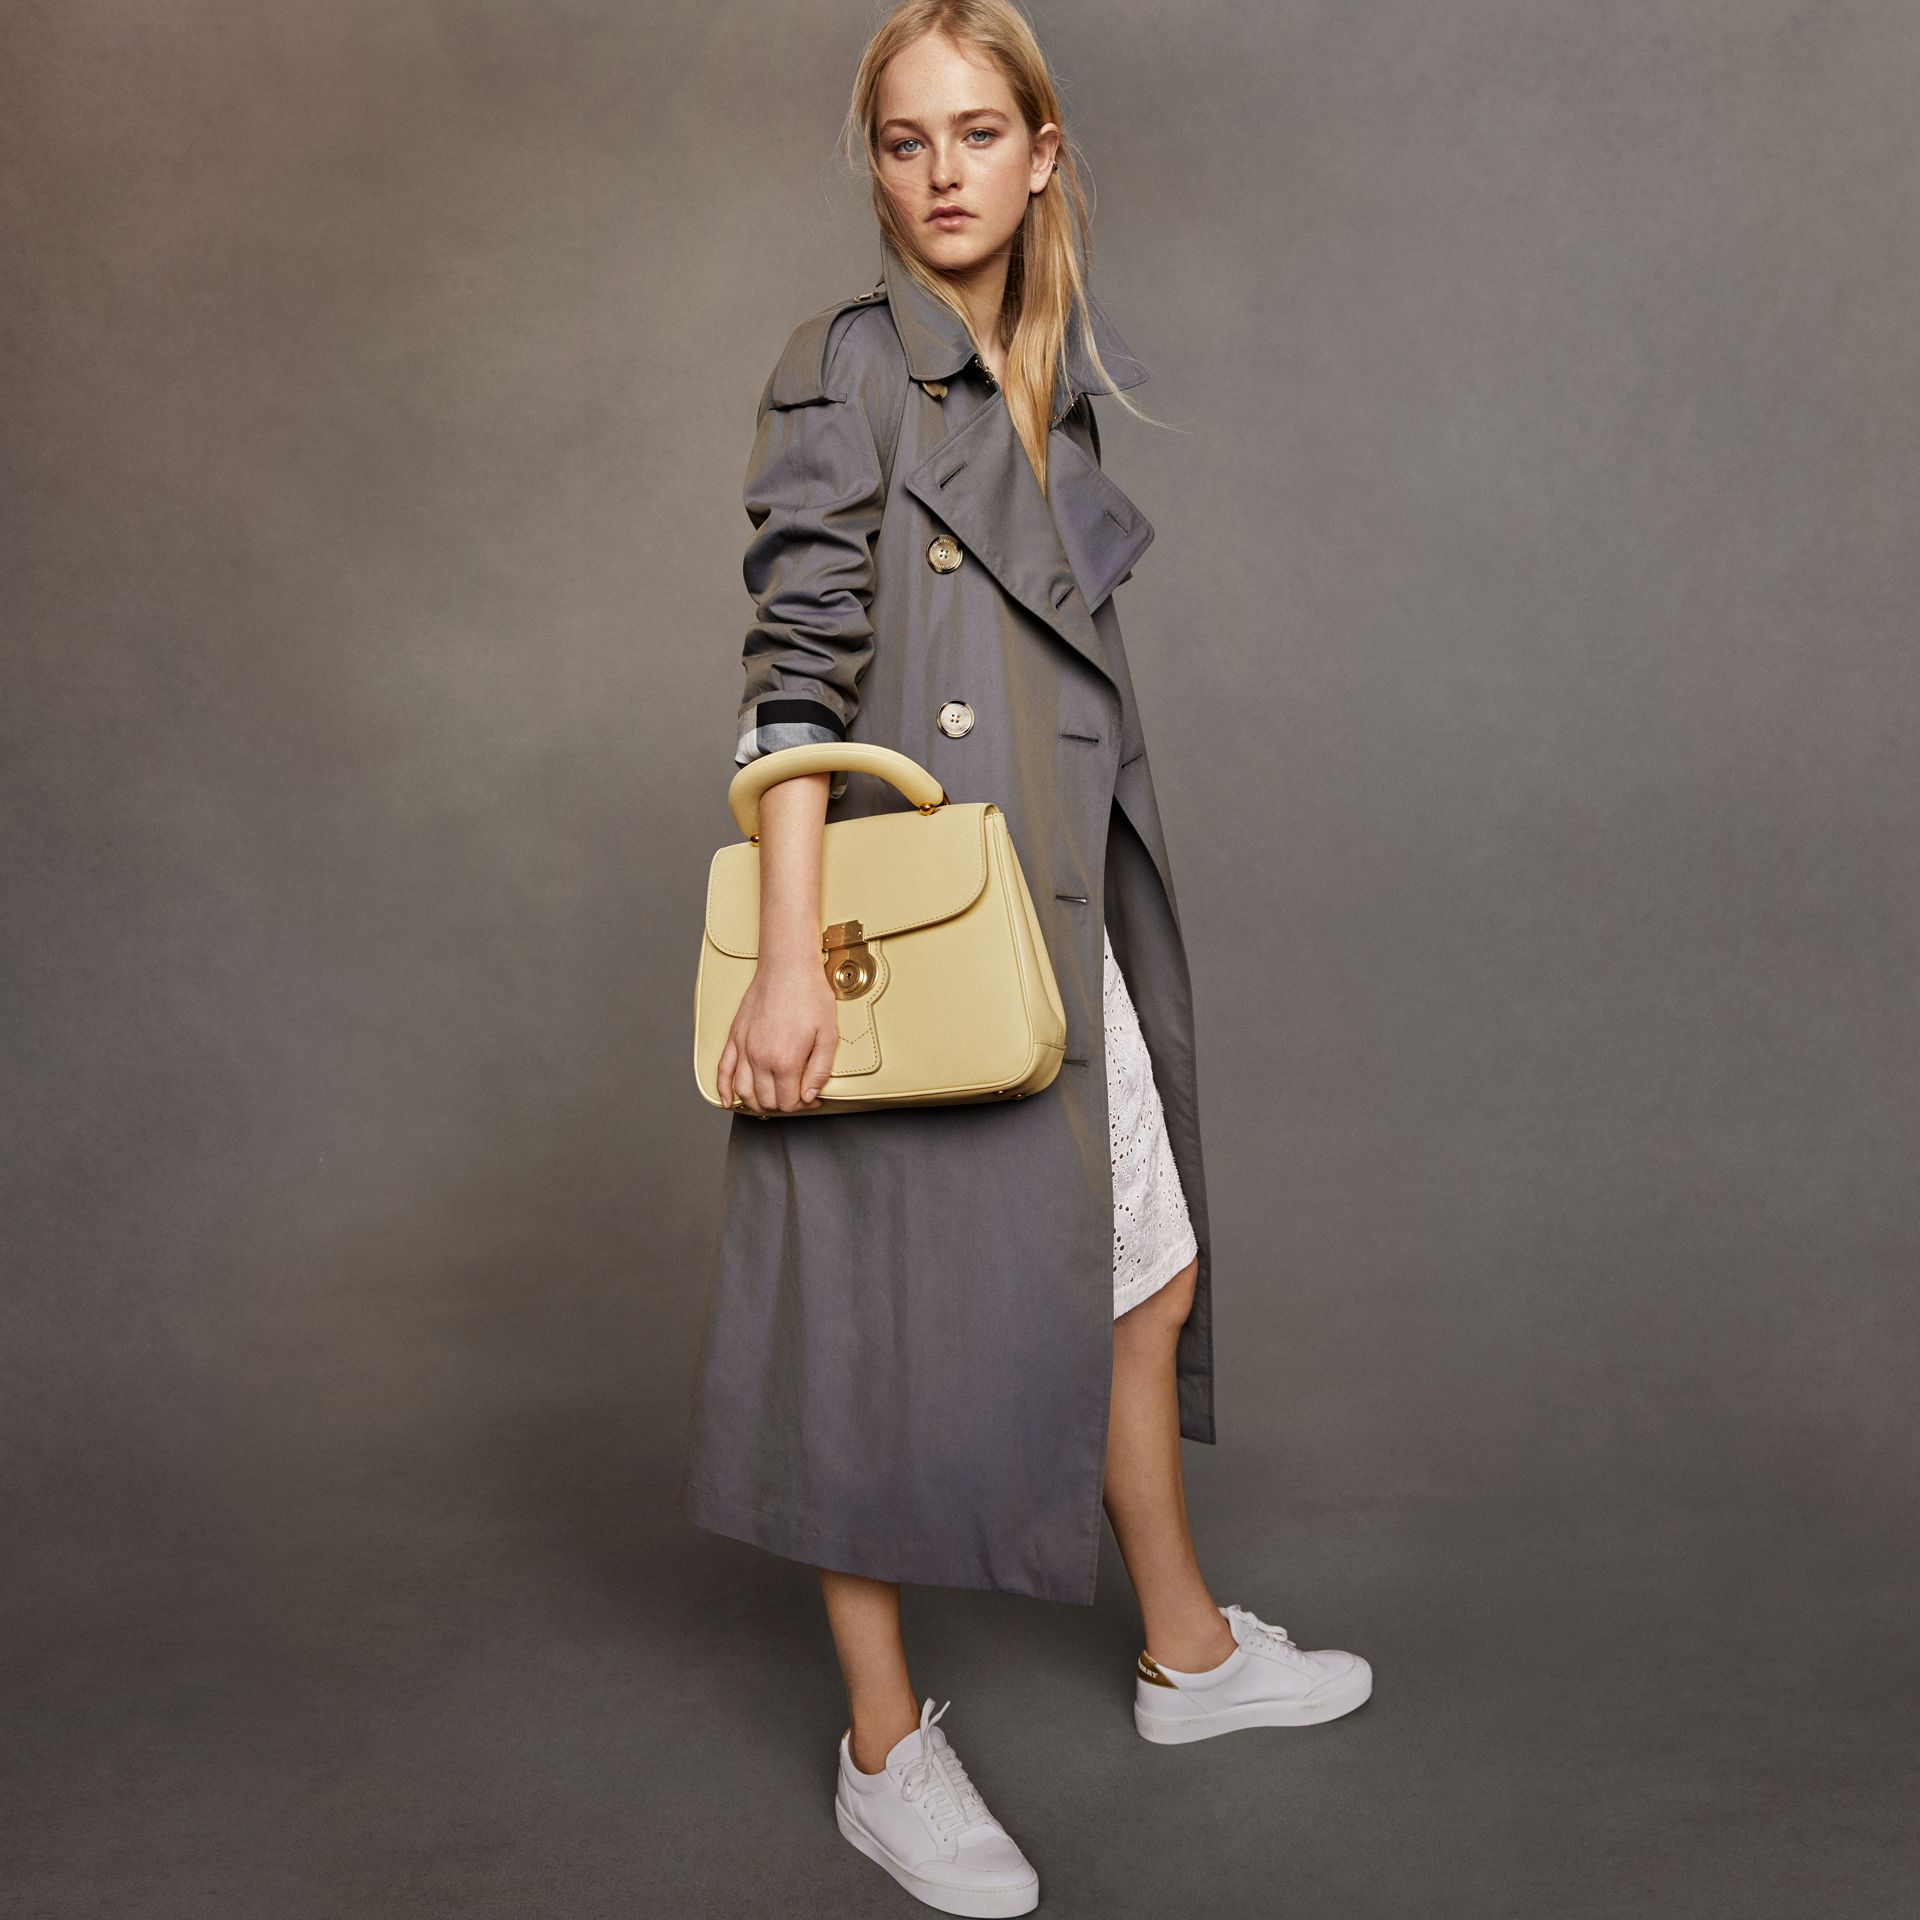 Tropical Gabardine Trench Coat in Storm Blue - Women | Burberry - gallery image 9